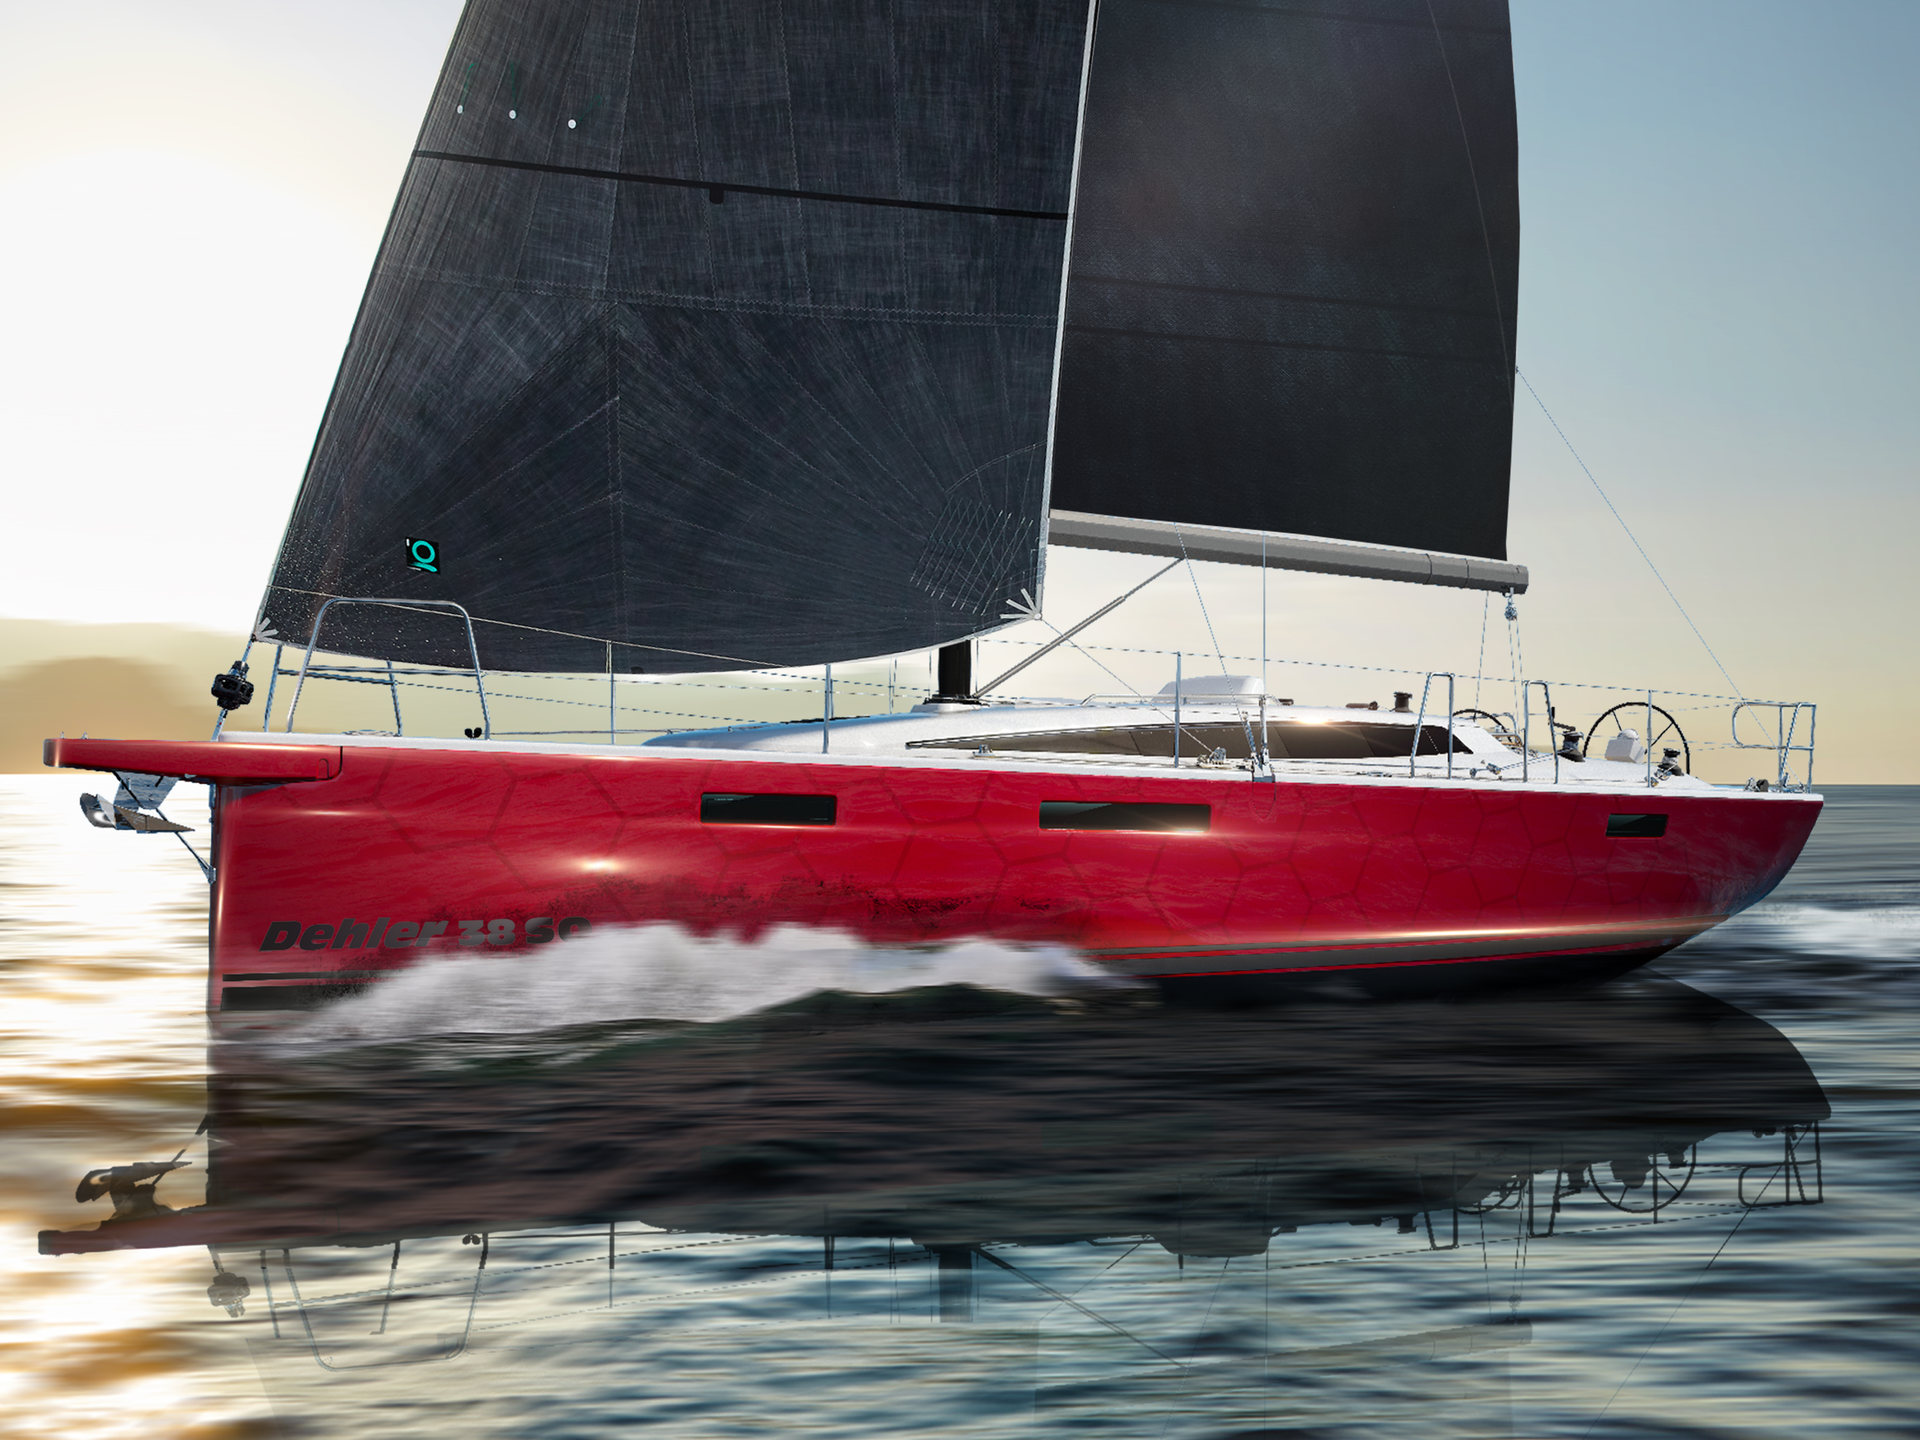 360 VR Virtual Tours of the Dehler 34 – VRCLOUD